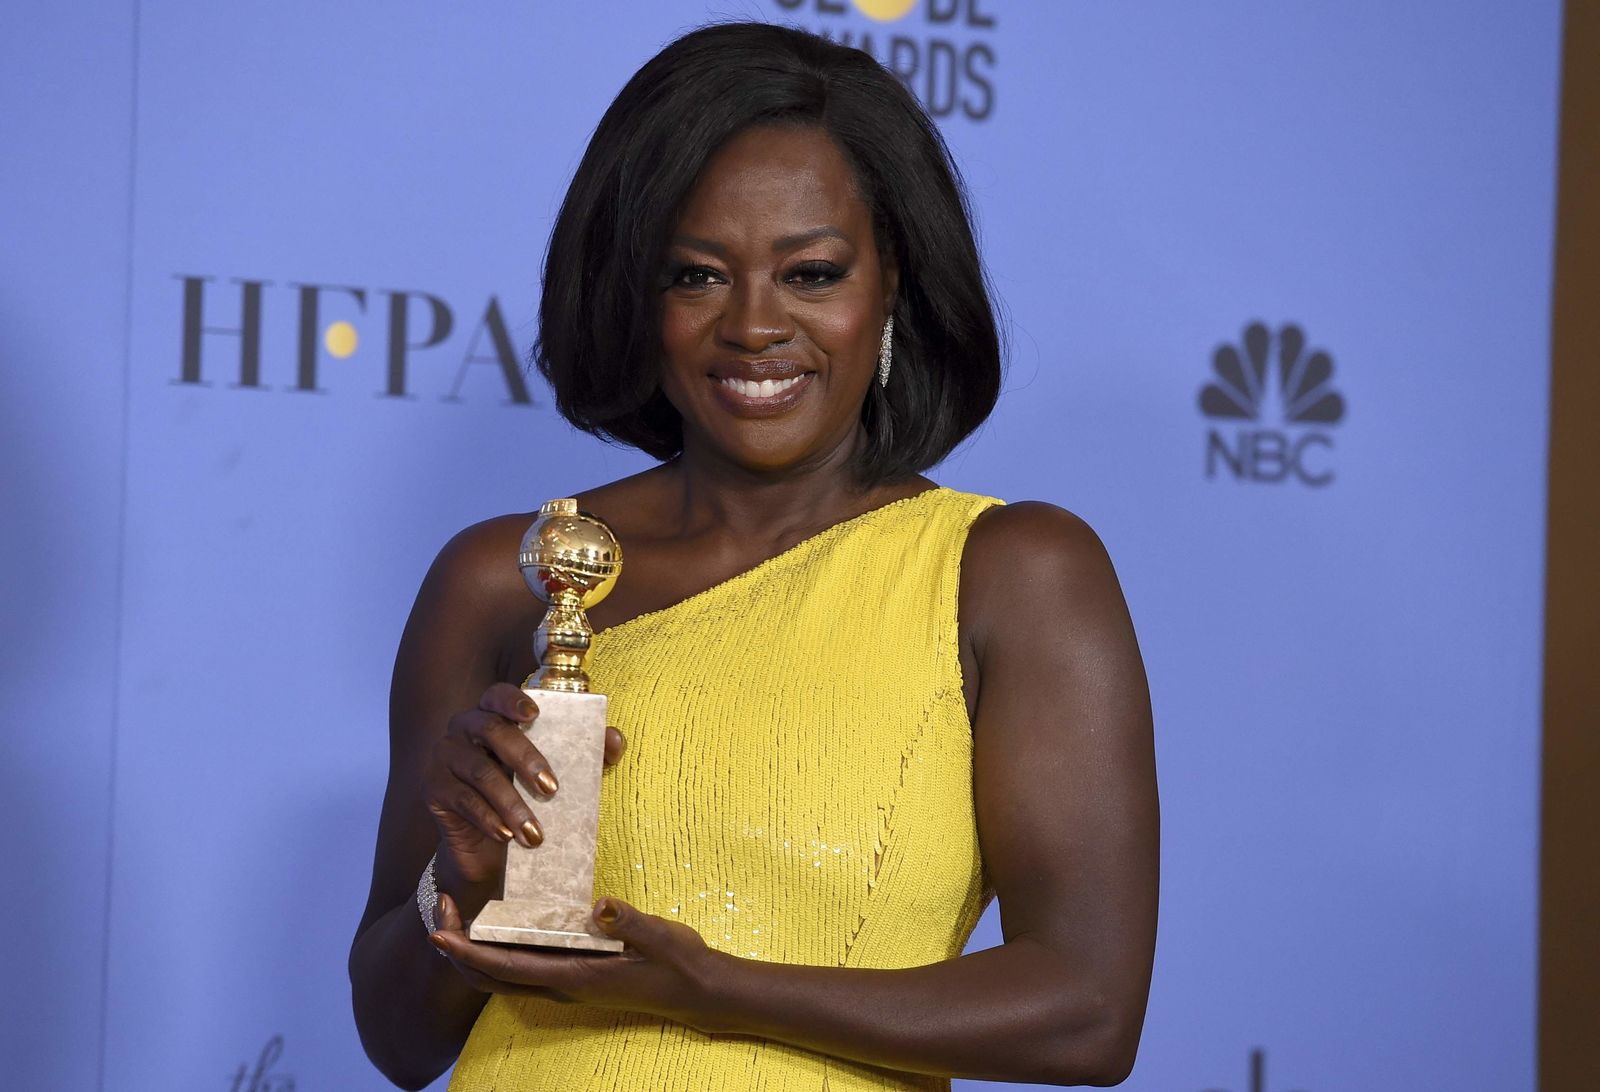 Viola Davis poses in the press room with the award for best performance by an actress in a supporting role in any motion picture for 'Fences' at the 74th annual Golden Globe Awards at the Beverly Hilton Hotel on Sunday, Jan. 8, 2017, in Beverly Hills, Calif. (Photo by Jordan Strauss/Invision/AP)